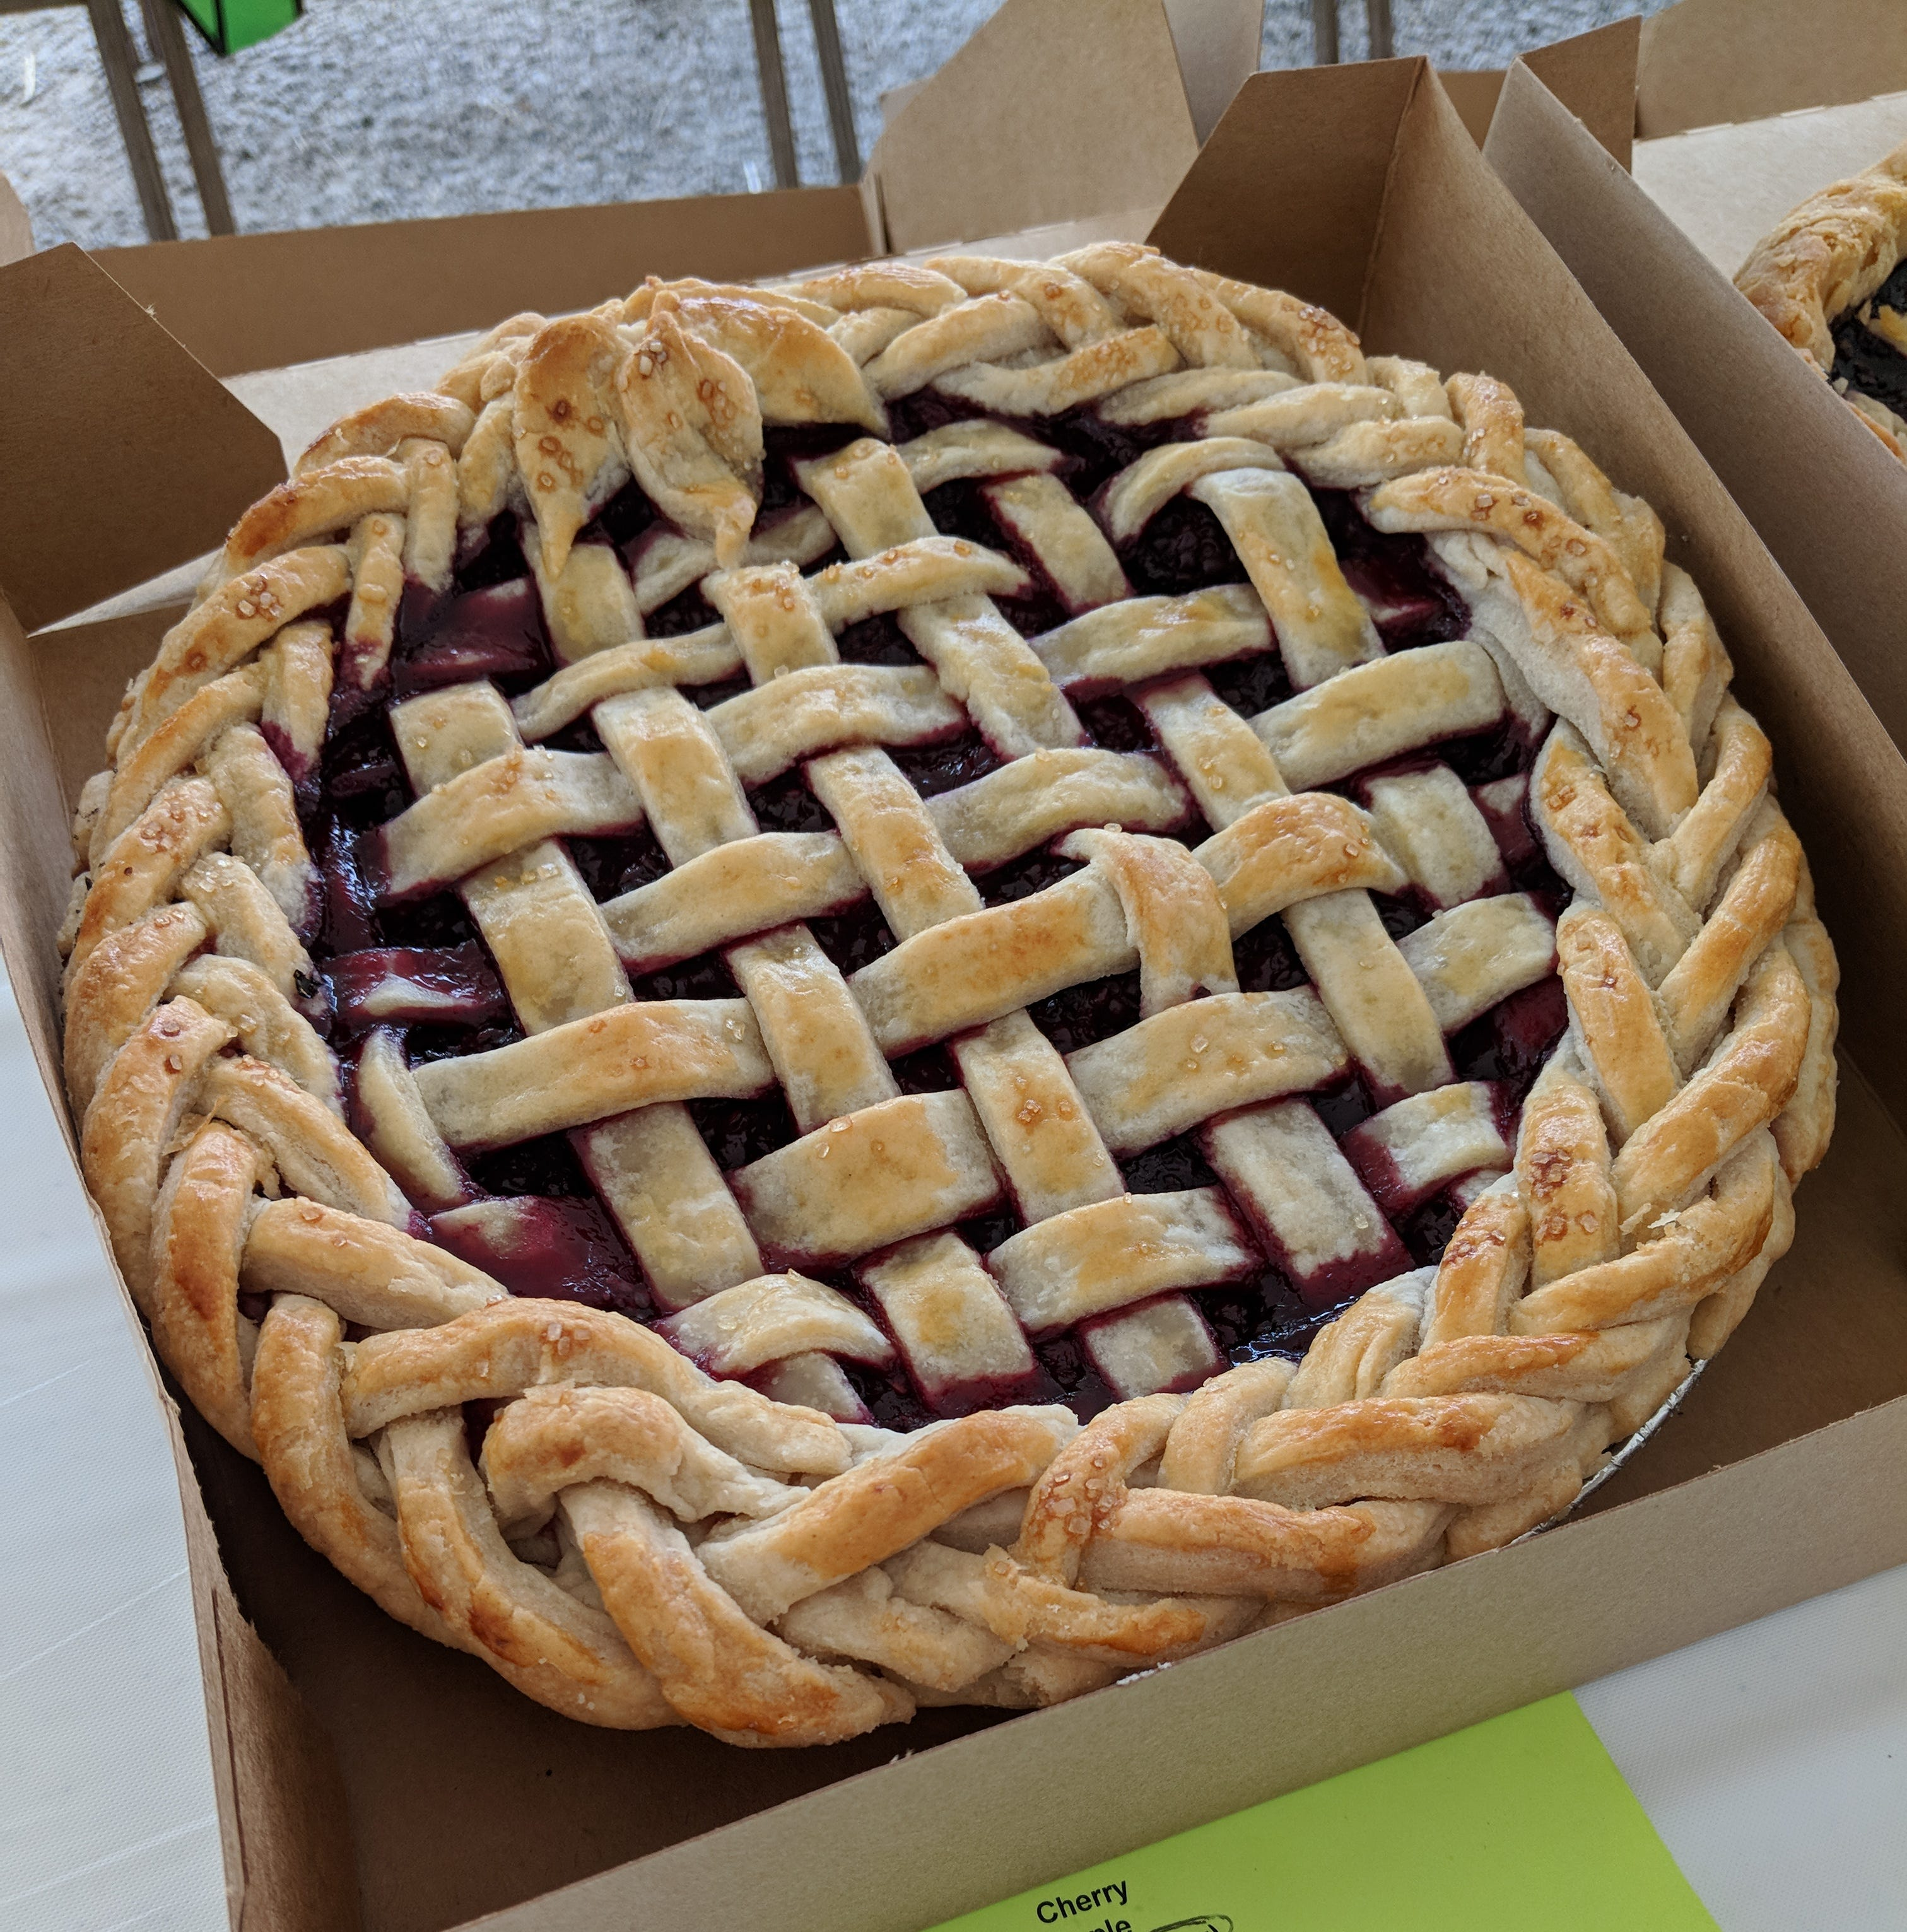 How to make the award-winning pies from the Johnson County Fair